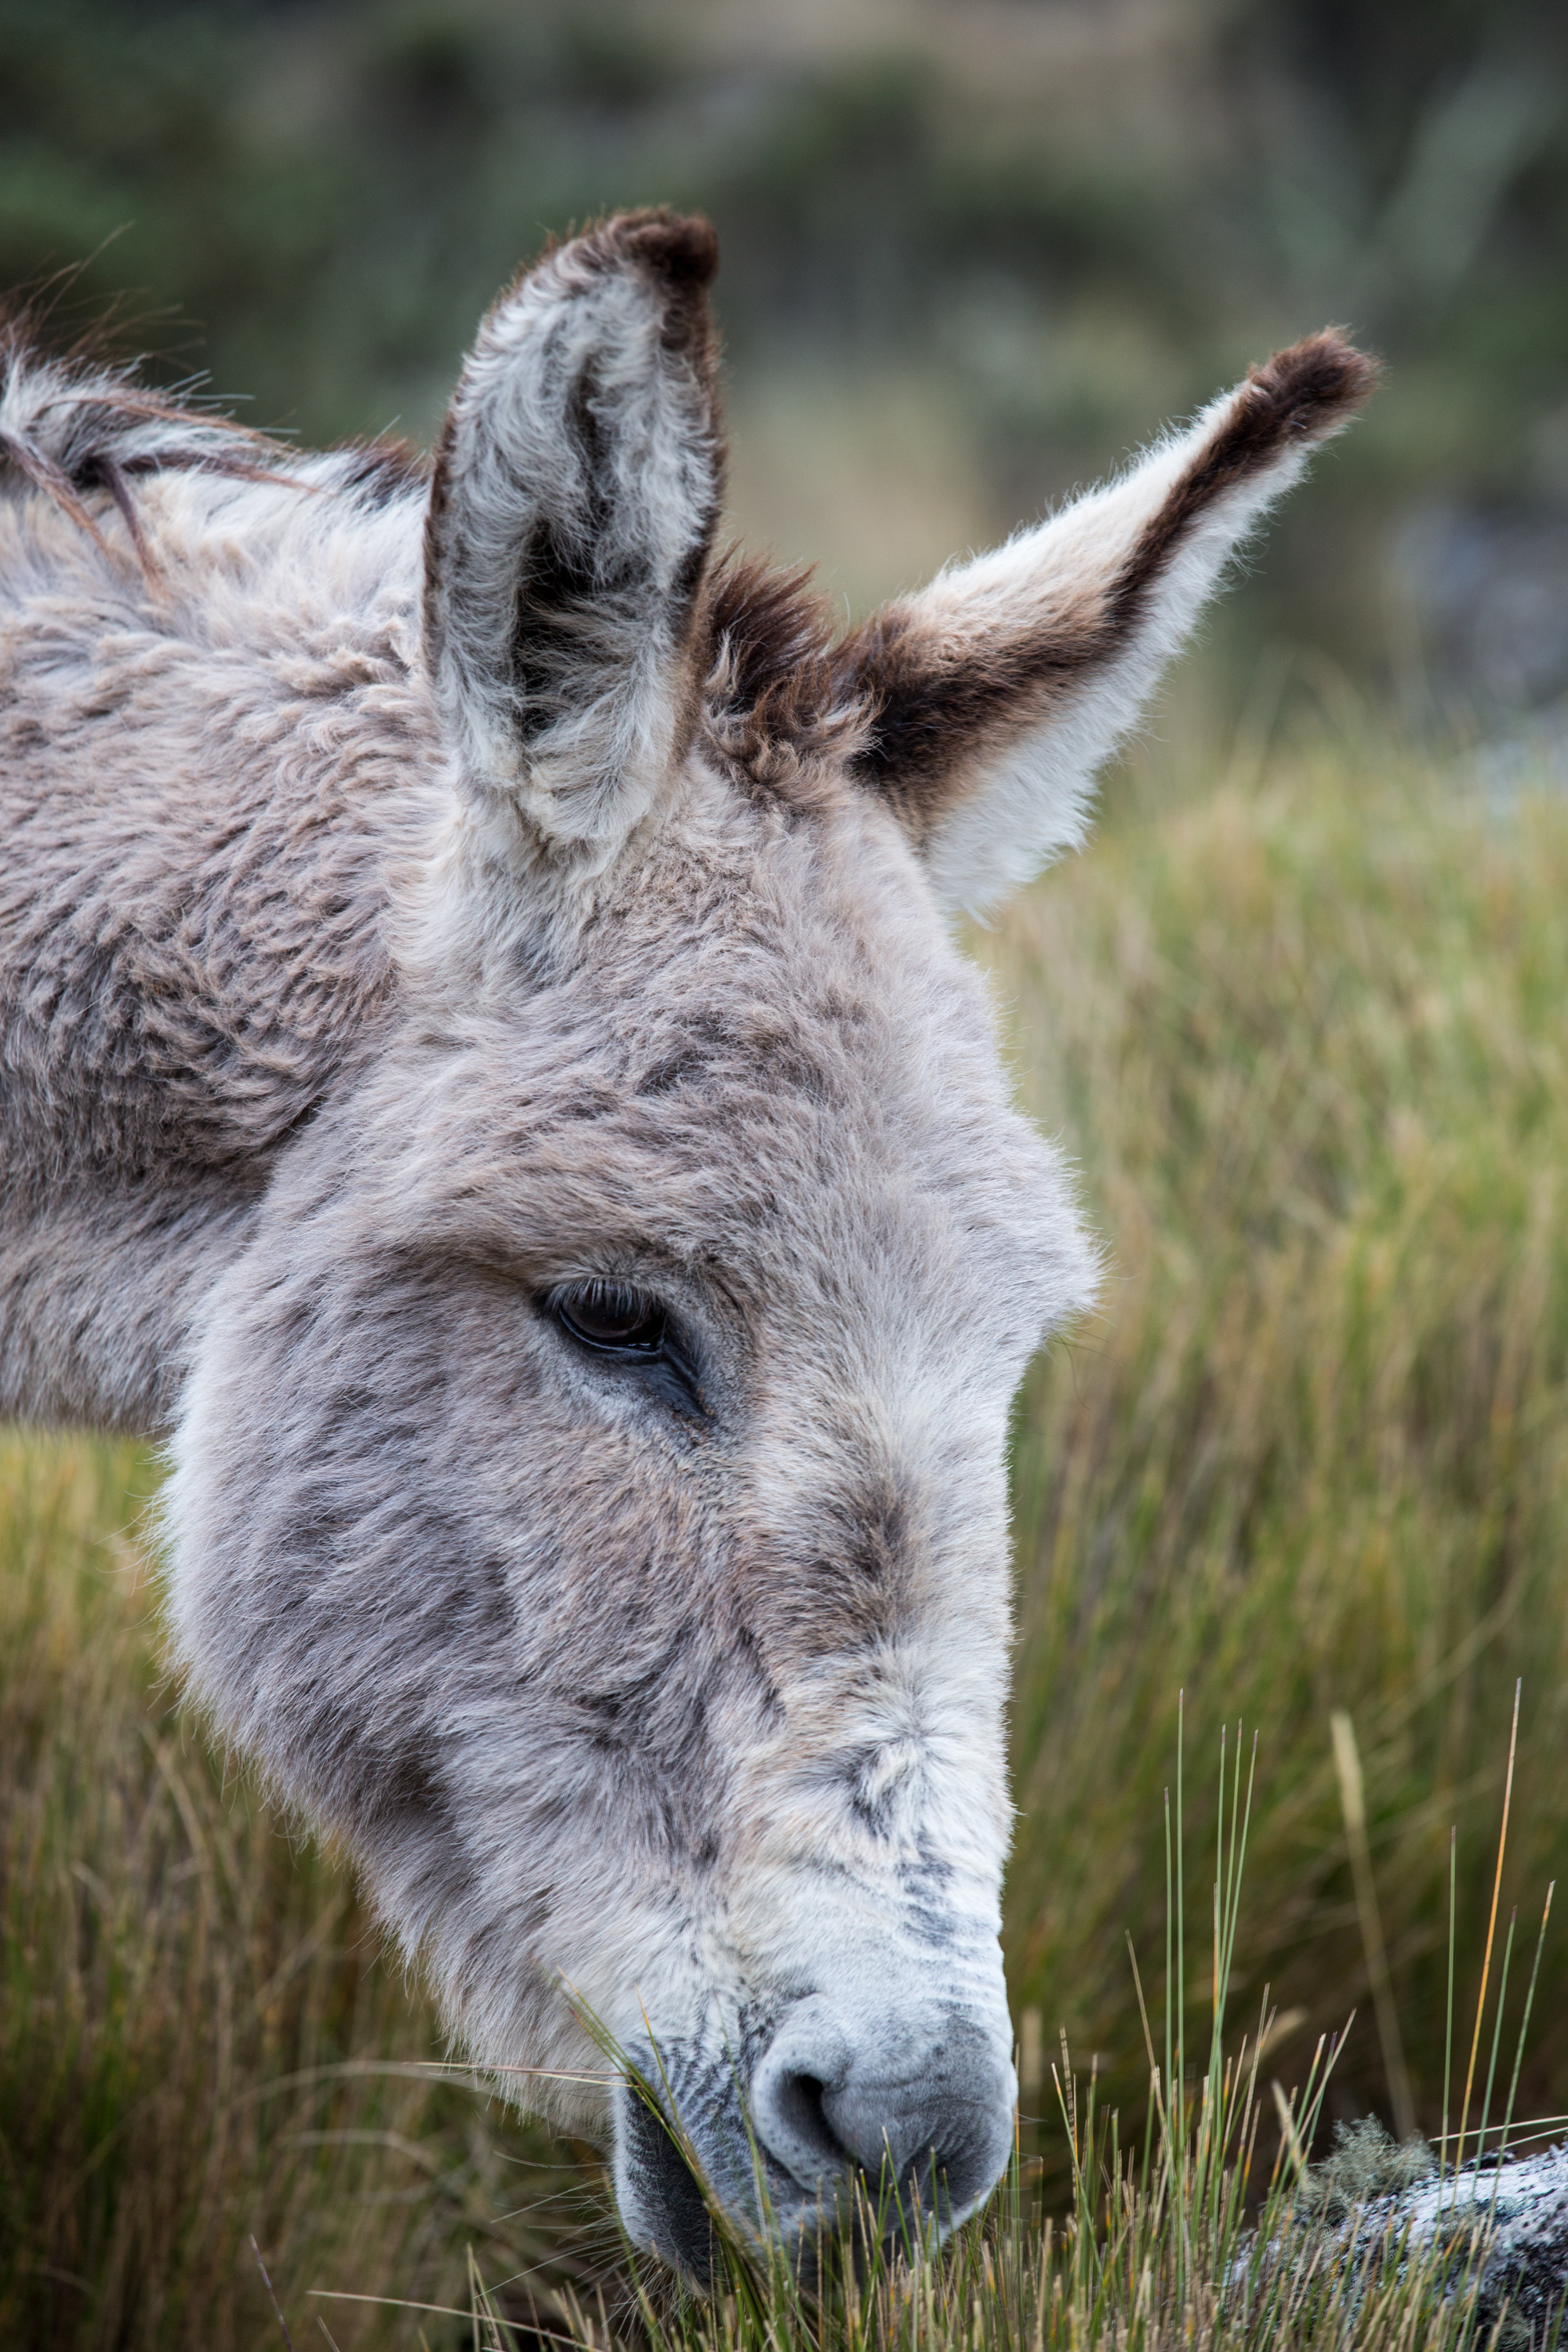 Head of a hungry donkey